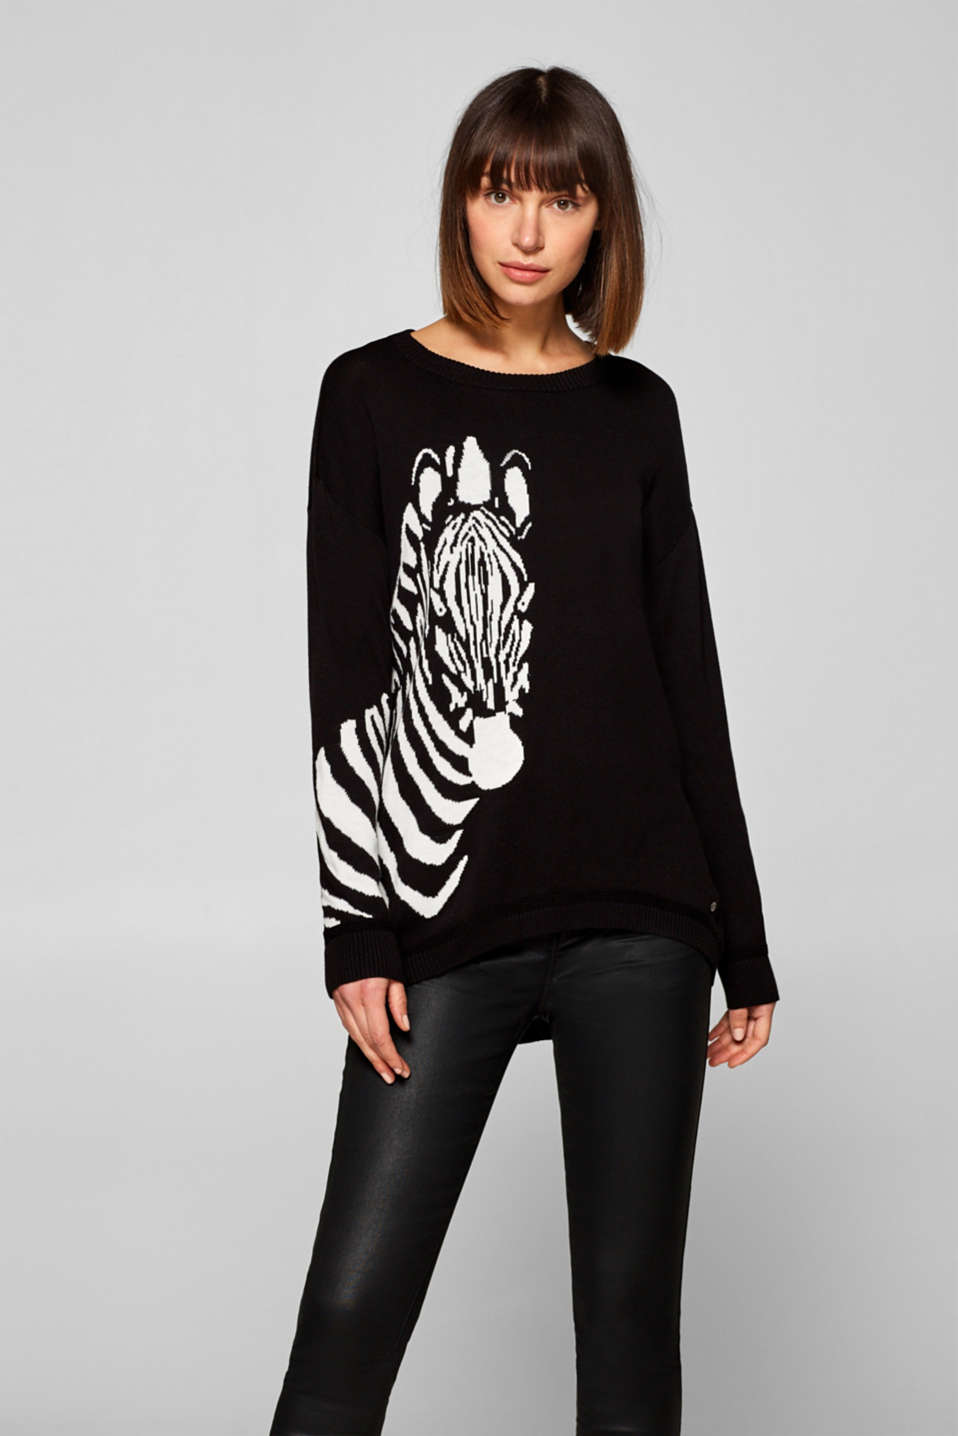 edc - Jumper with intarsia motif, cotton blend